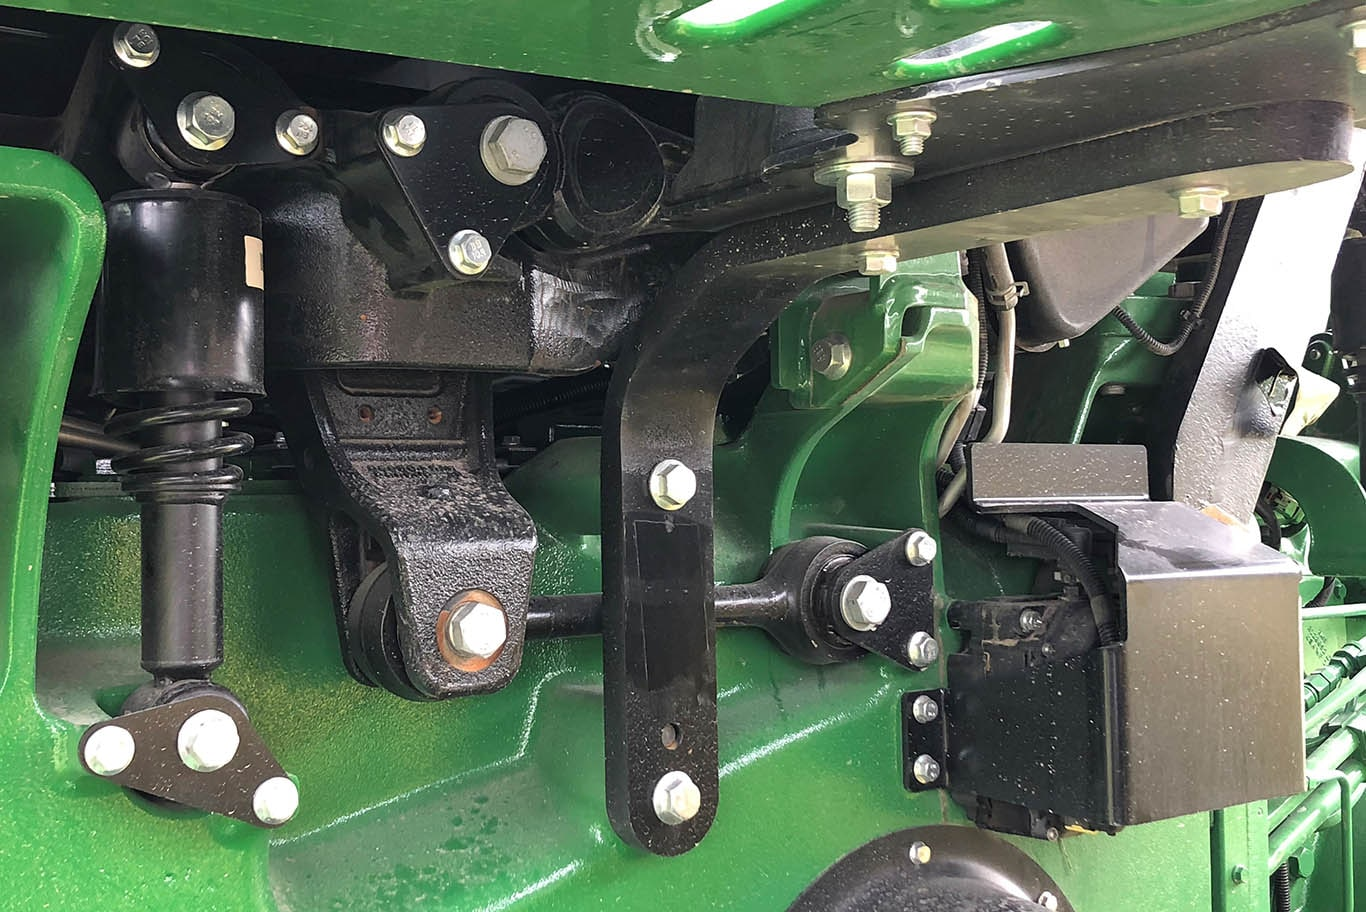 The Premium CommandView III Cab with cab suspension is standard on 2019 John Deere 8RT Series Tractors